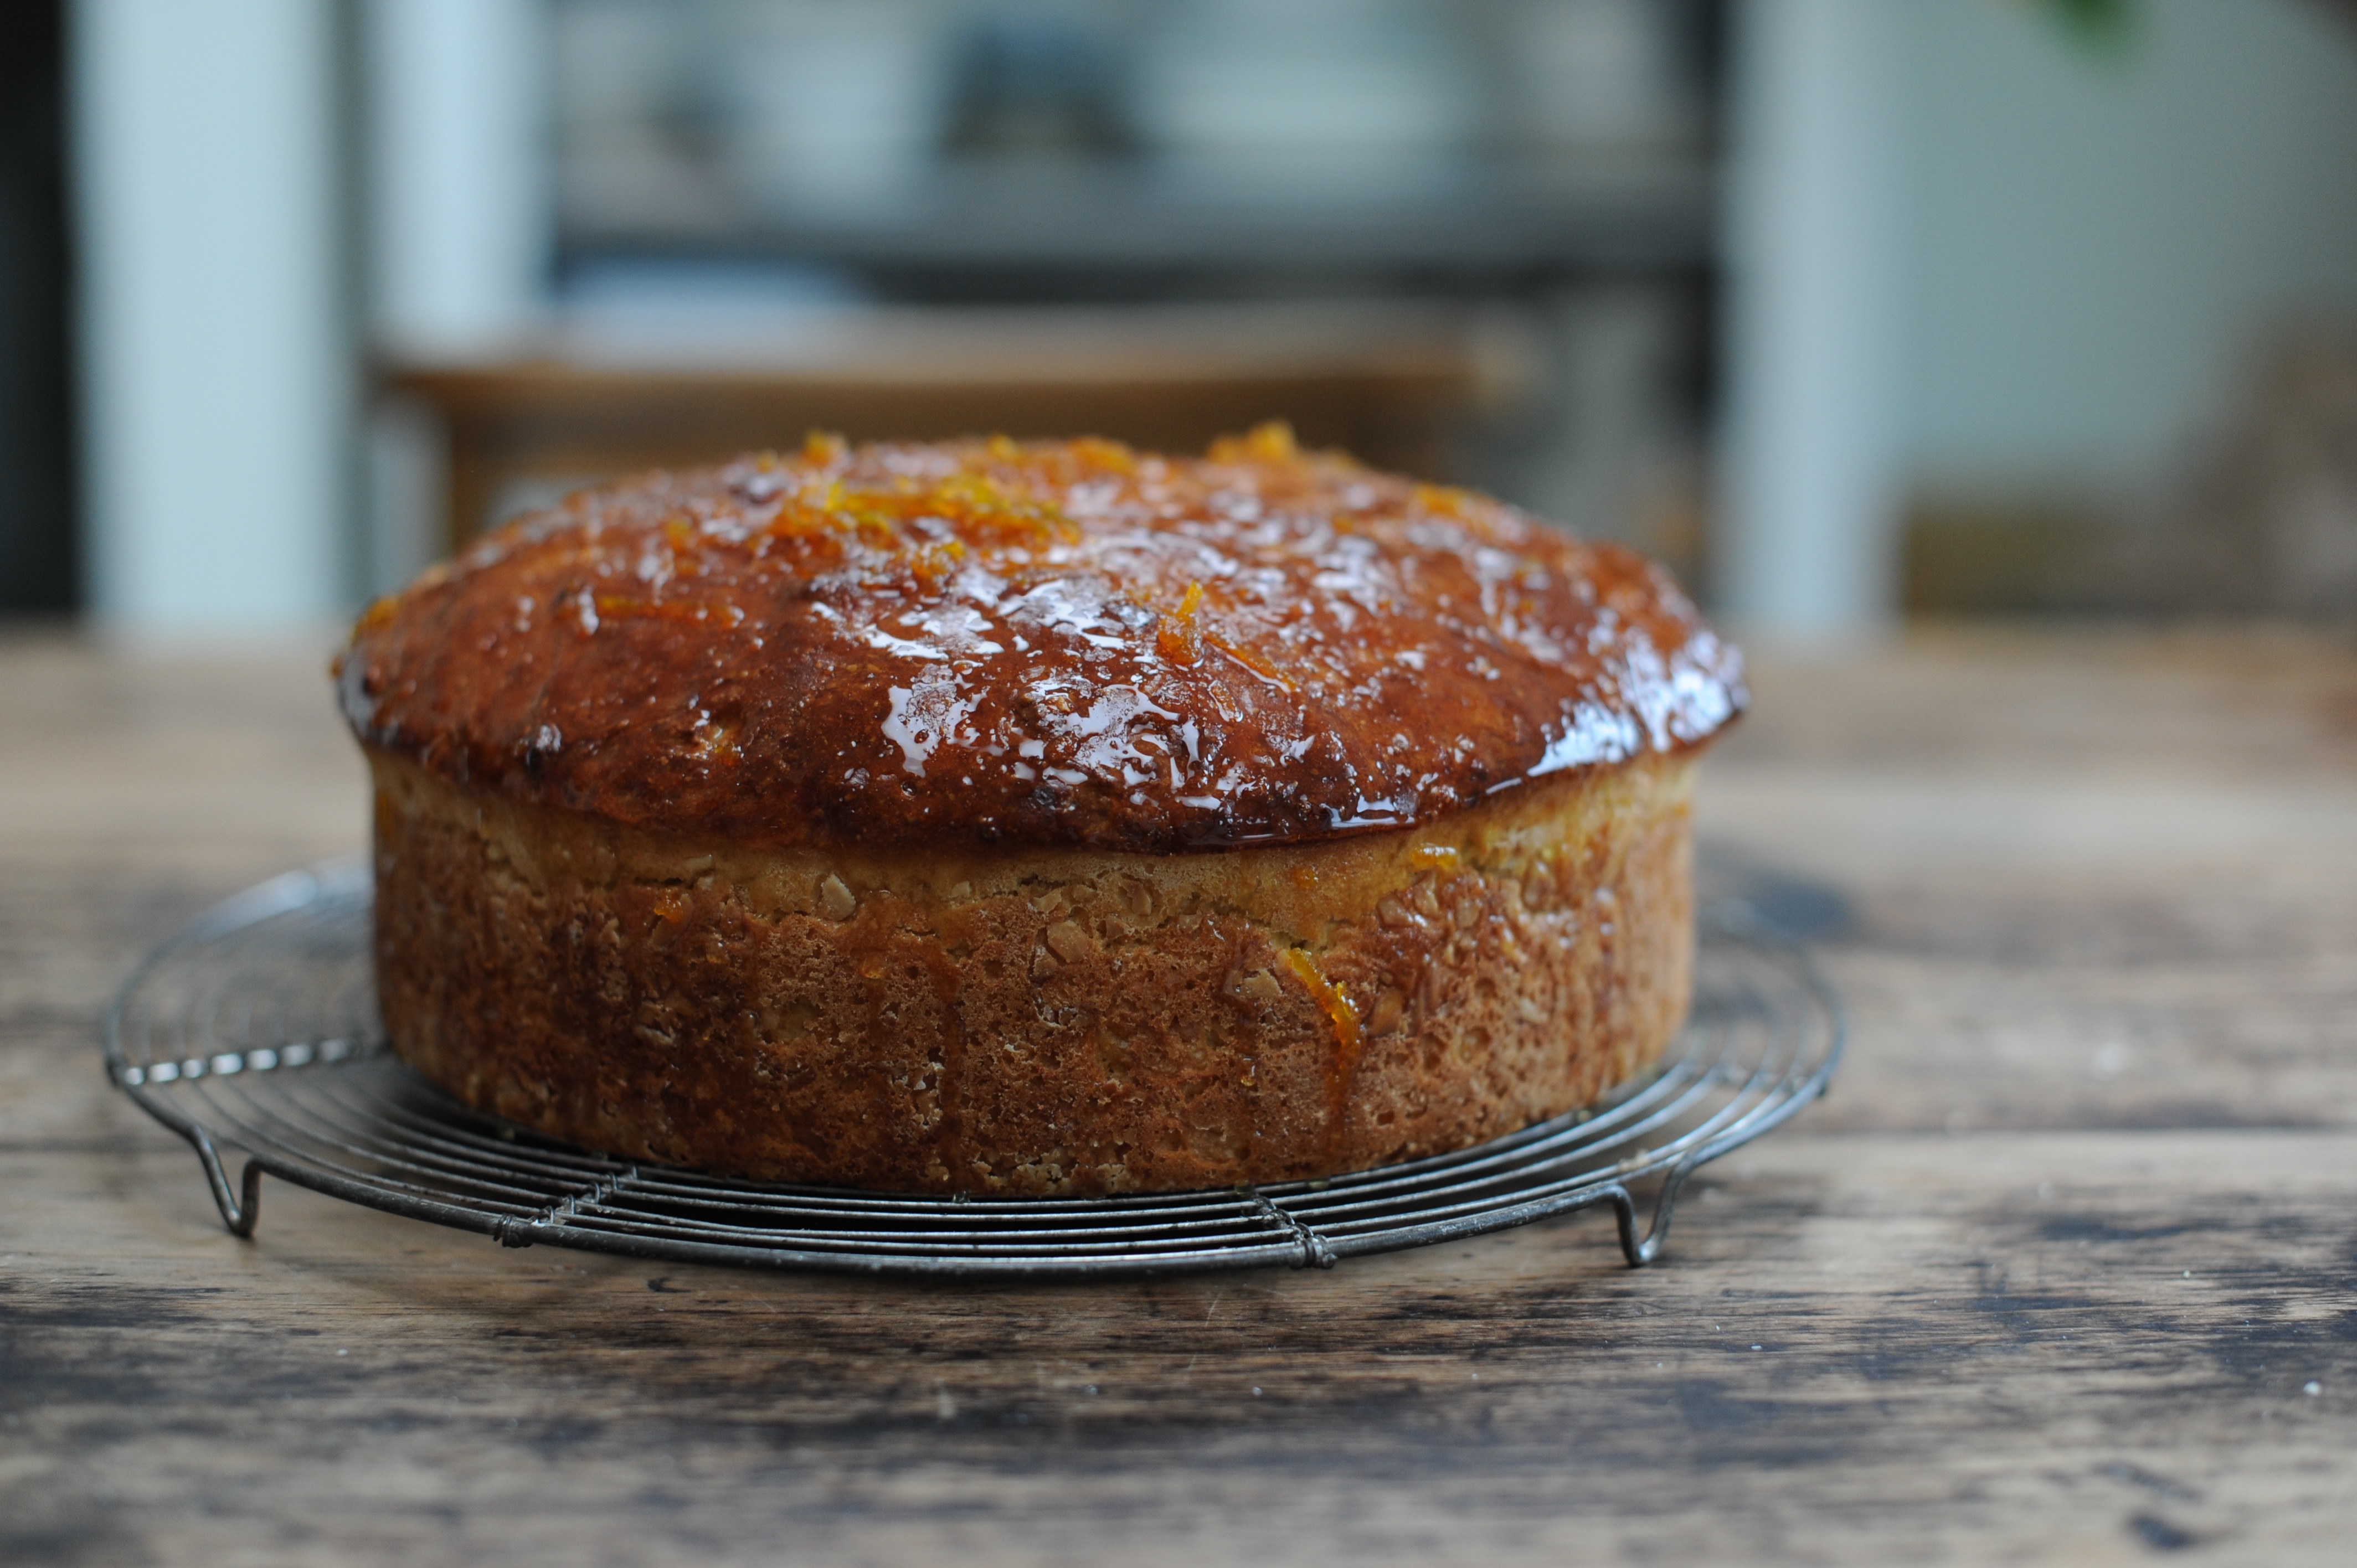 Sourdough Festive Sweet Orange Cake